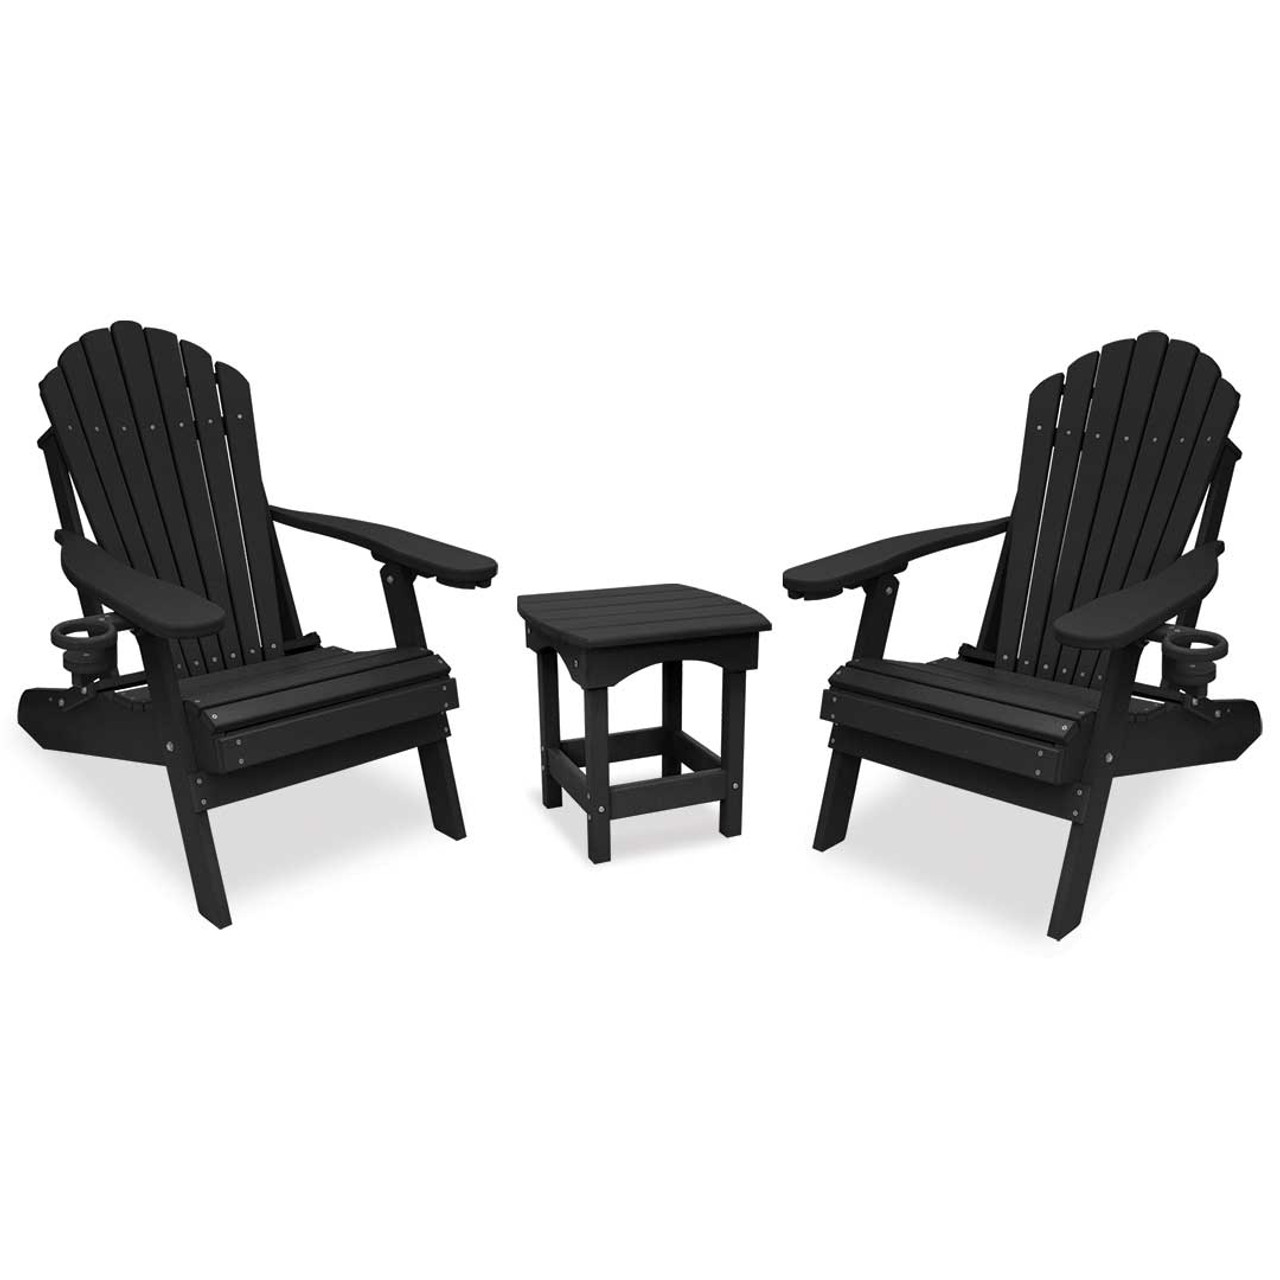 Adirondack Chair Set Outer Banks 3 Piece Deluxe Adirondack Chair Set With Harbor Side Table Available In 13 Colors